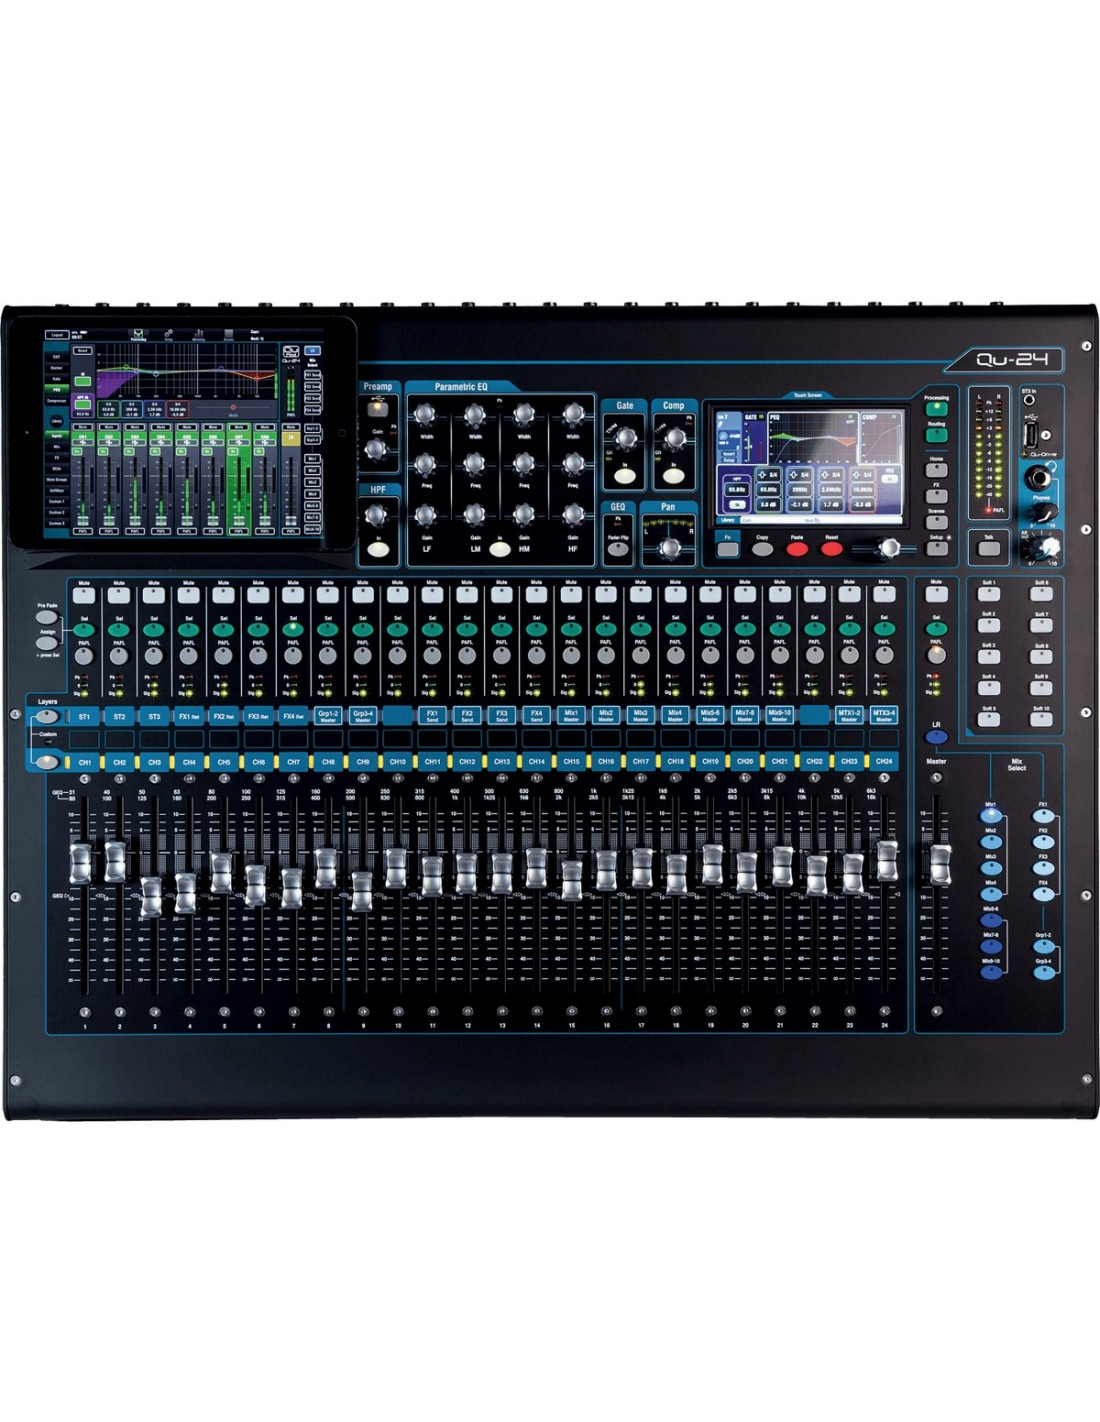 Allen heath qu 24 table de mixage num rique 24 entr es for Table de 24